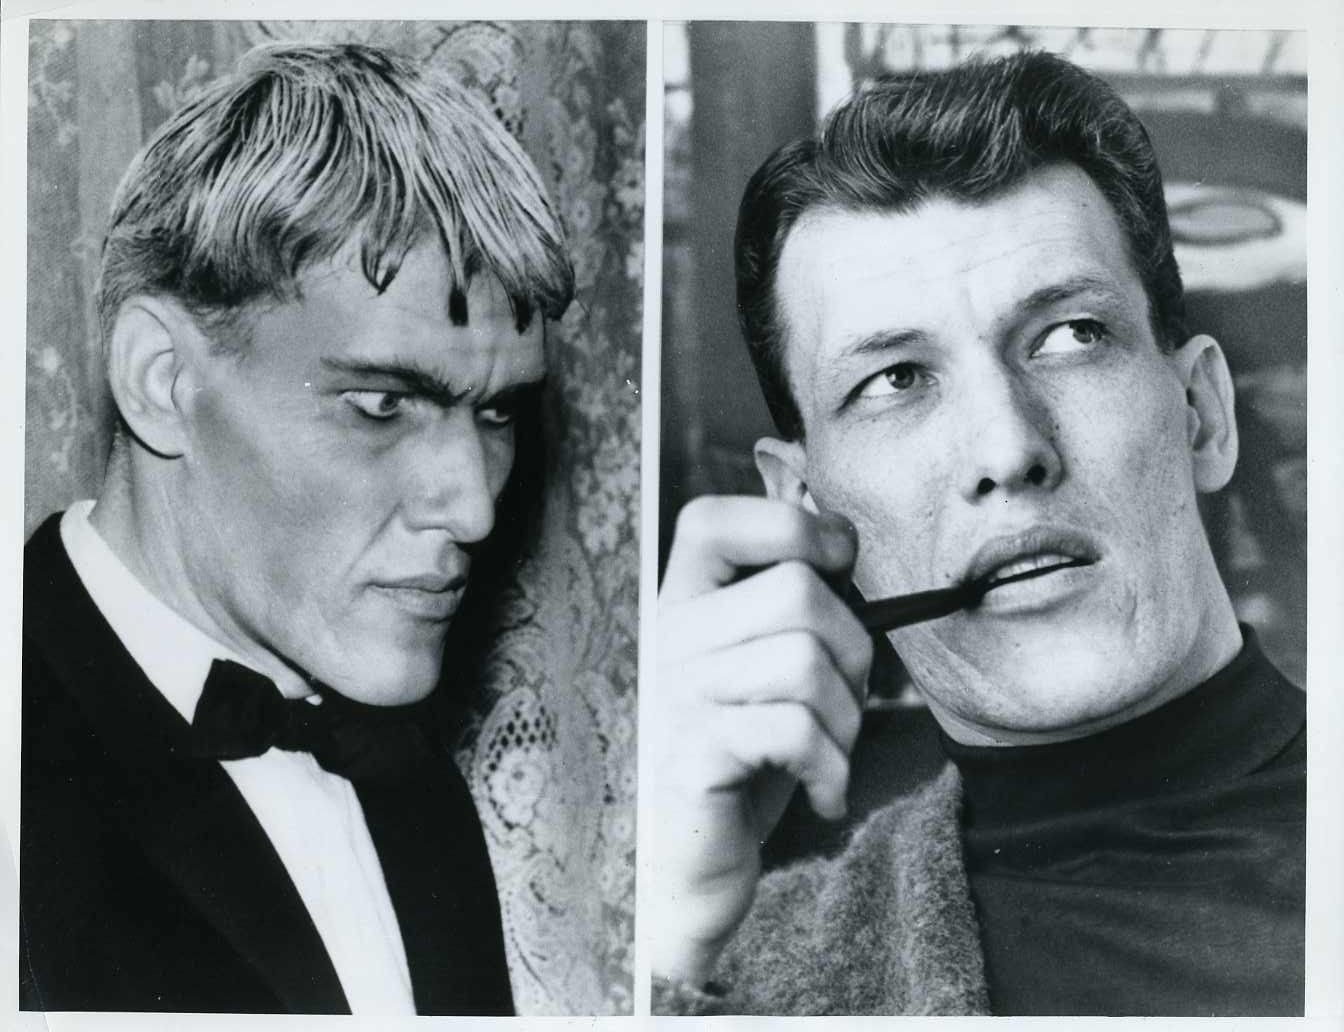 ted cassidy photosted cassidy height, ted cassidy imdb, ted cassidy interview, ted cassidy bigfoot, ted cassidy grave, ted cassidy photos, ted cassidy wife, ted cassidy movies, ted cassidy and richard kiel, ted cassidy family, ted cassidy on star trek, ted cassidy age, ted cassidy son, ted cassidy how did he die, ted cassidy i dream of jeannie, ted cassidy bonanza, ted cassidy the incredible hulk, ted cassidy roles, ted cassidy batman, ted cassidy biography